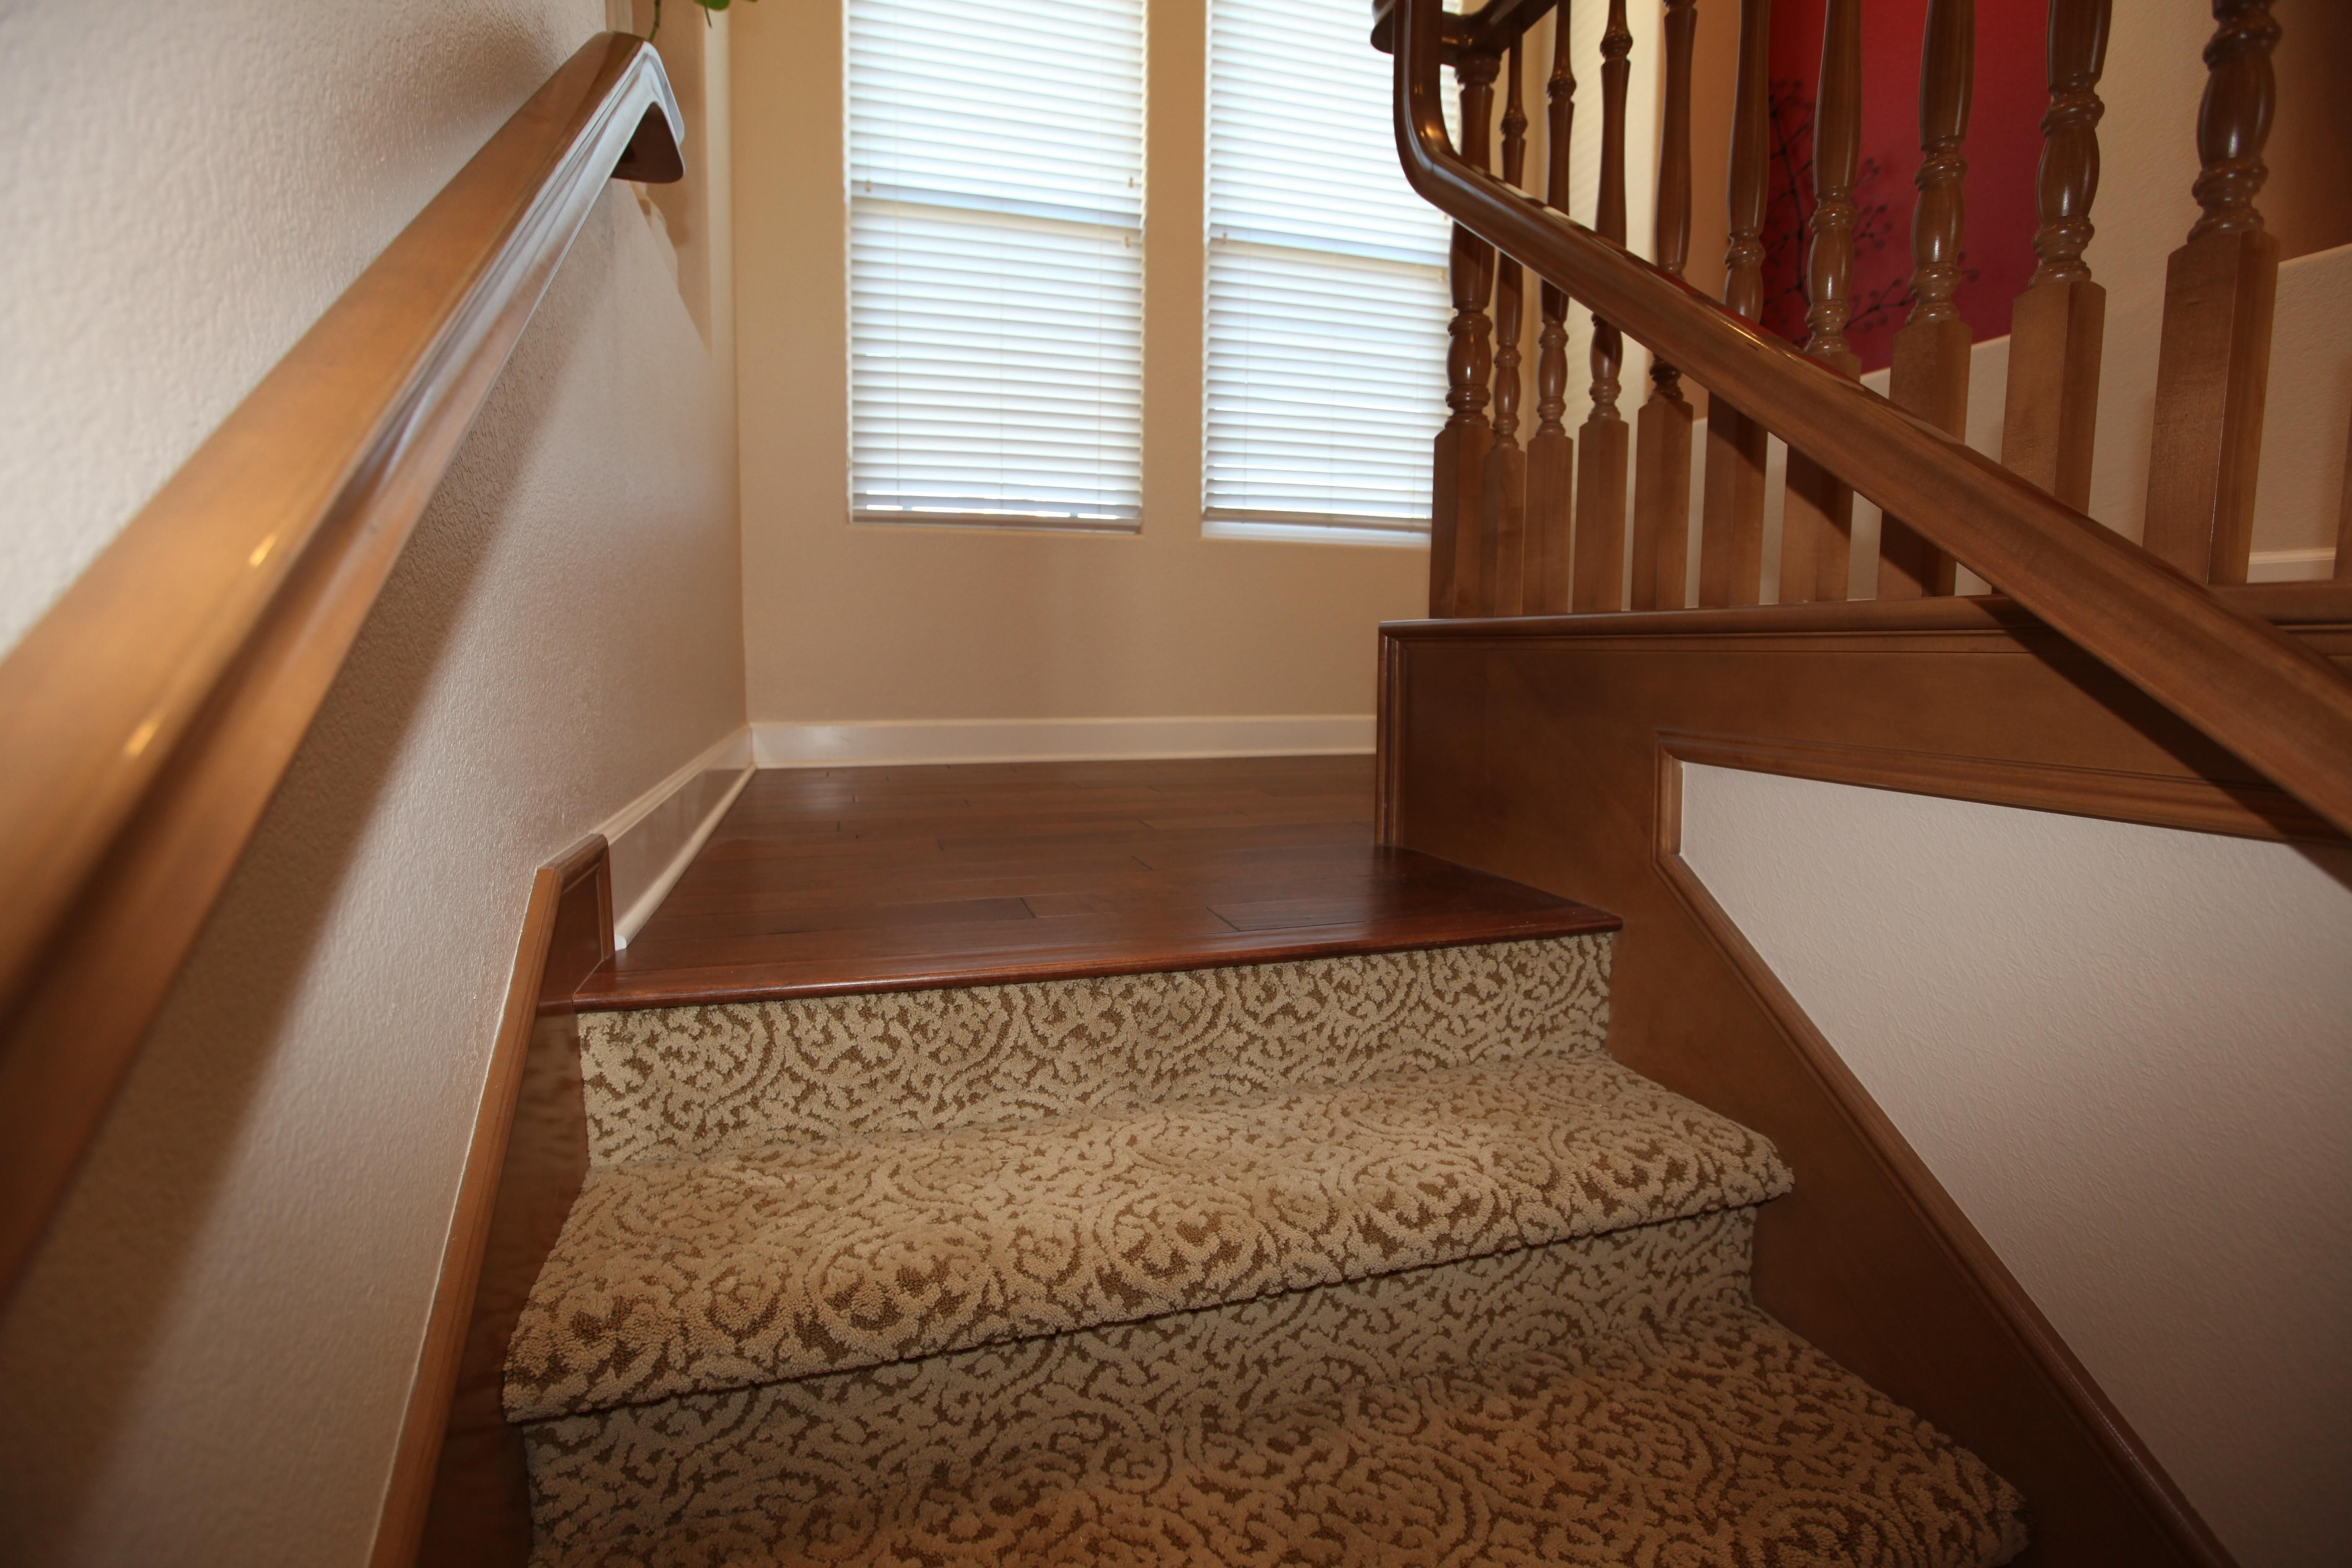 Carpet Stairs To Wood Floor Transition Wood Flooring Is The Most | Carpeted Stairs To Hardwood | Textured | Fully Carpeted | Staircase | Wall To Wall Carpet | Dark Wood